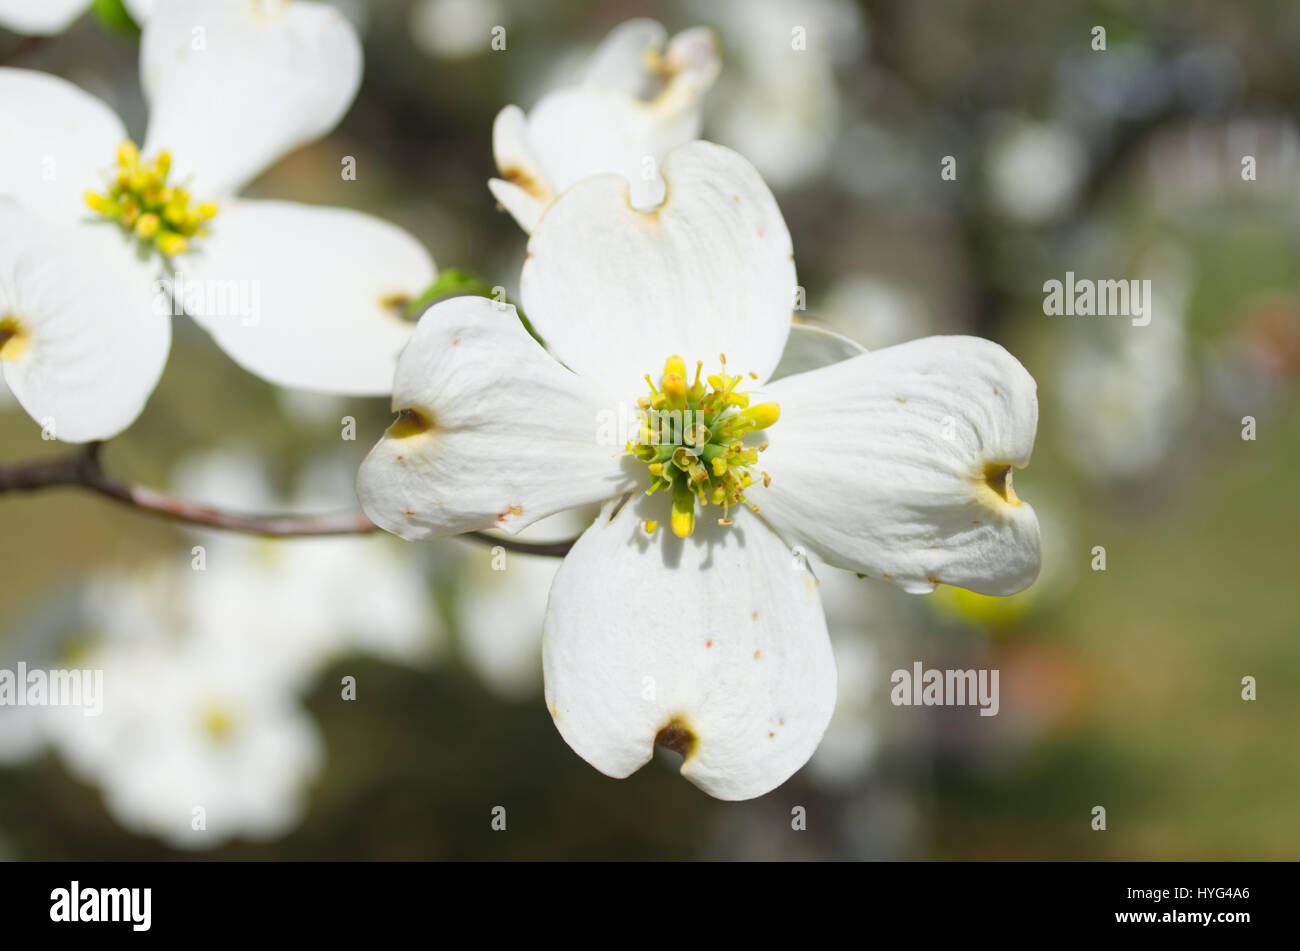 White Puffy Flowers Stock Photos & White Puffy Flowers Stock Images ...